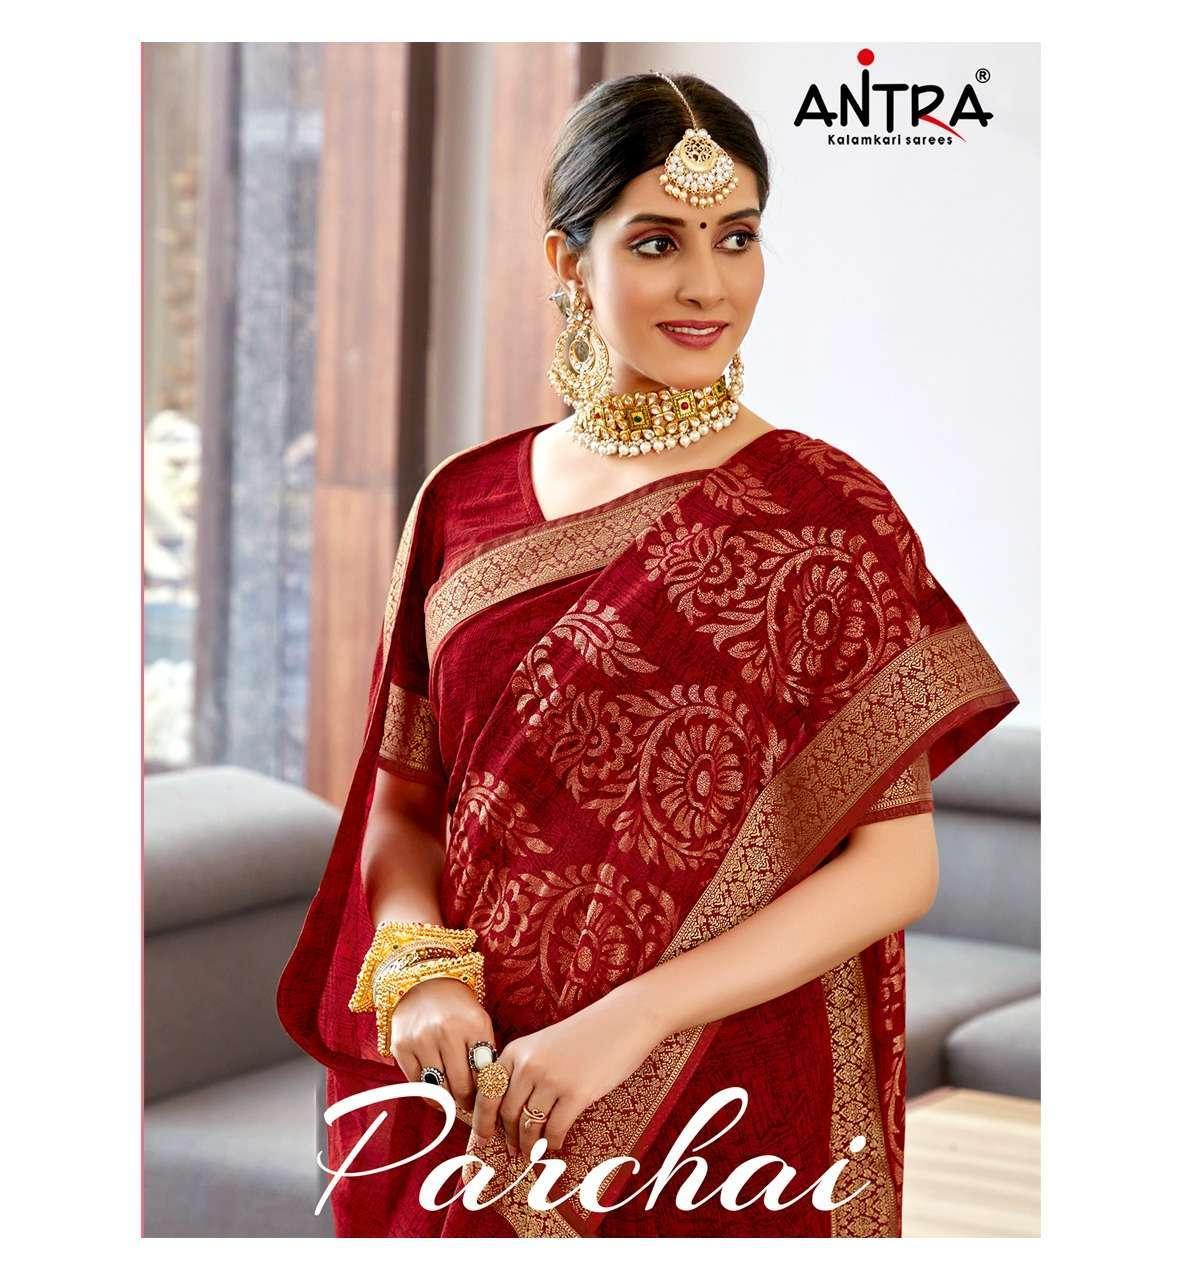 Antra parchai Georgette with Foil Print Sarees Collection